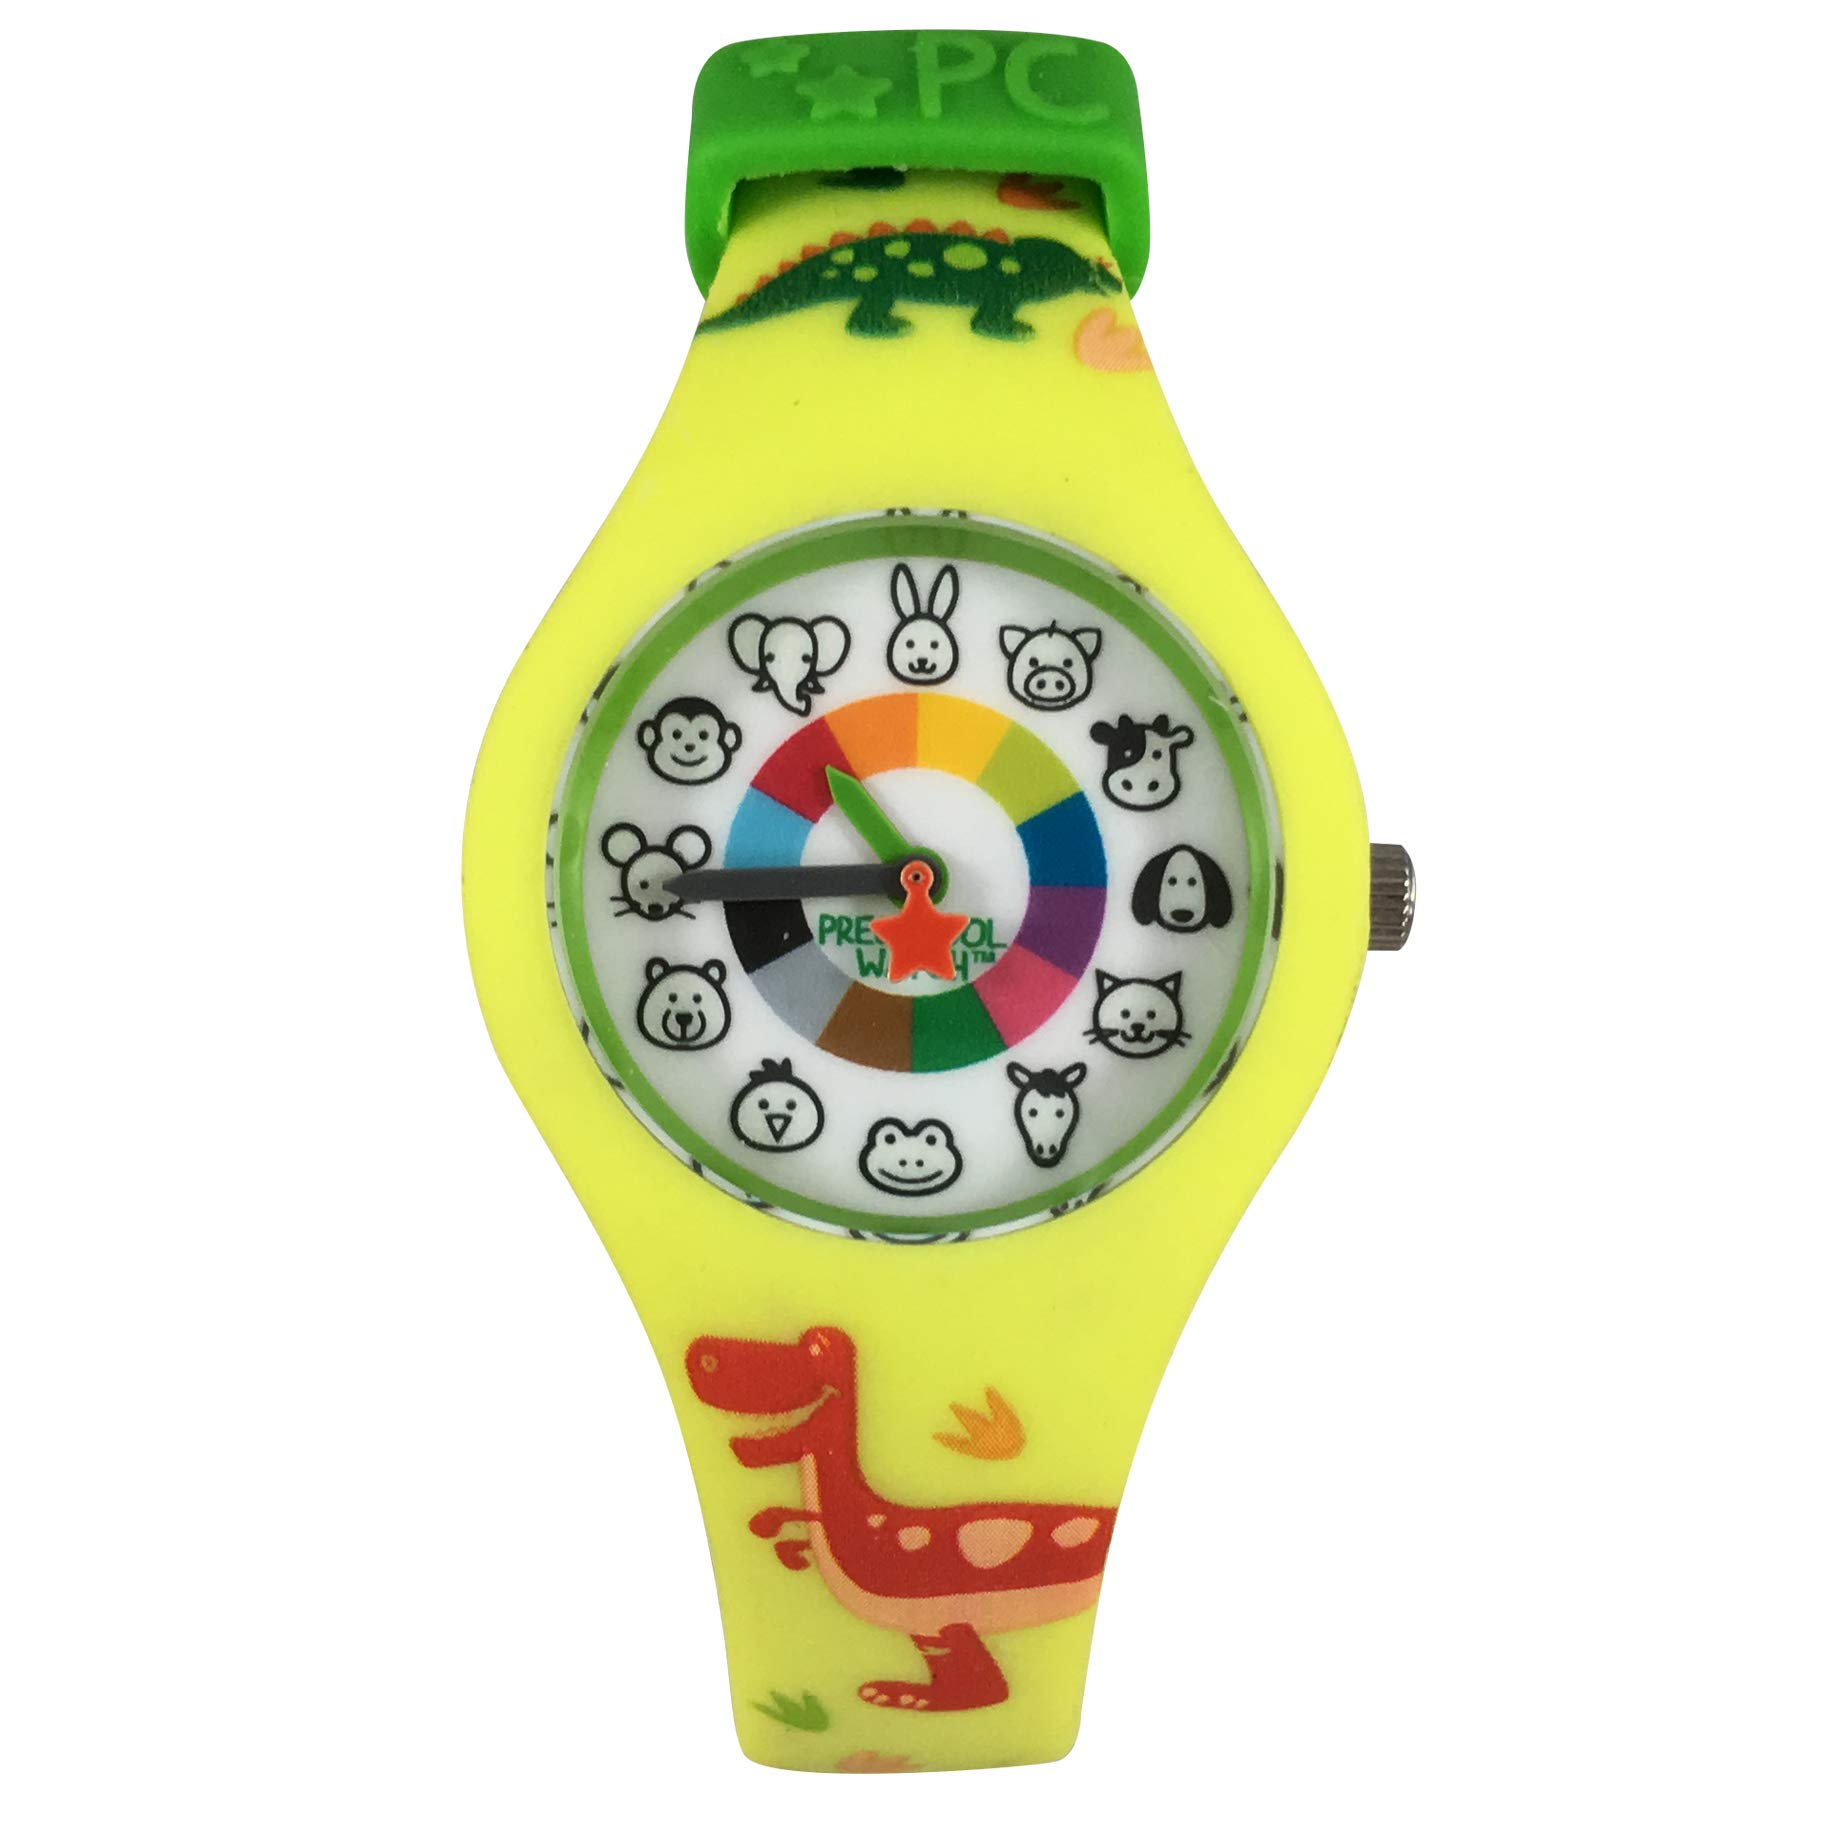 Dinosaur Preschool Watch - The Only Analog Kids Watch Preschoolers Understand! Quality Teaching time Silicone Watch with Glow-in-The-Dark Dial & Japan Movement by PRESCHOOL COLLECTION (Image #1)